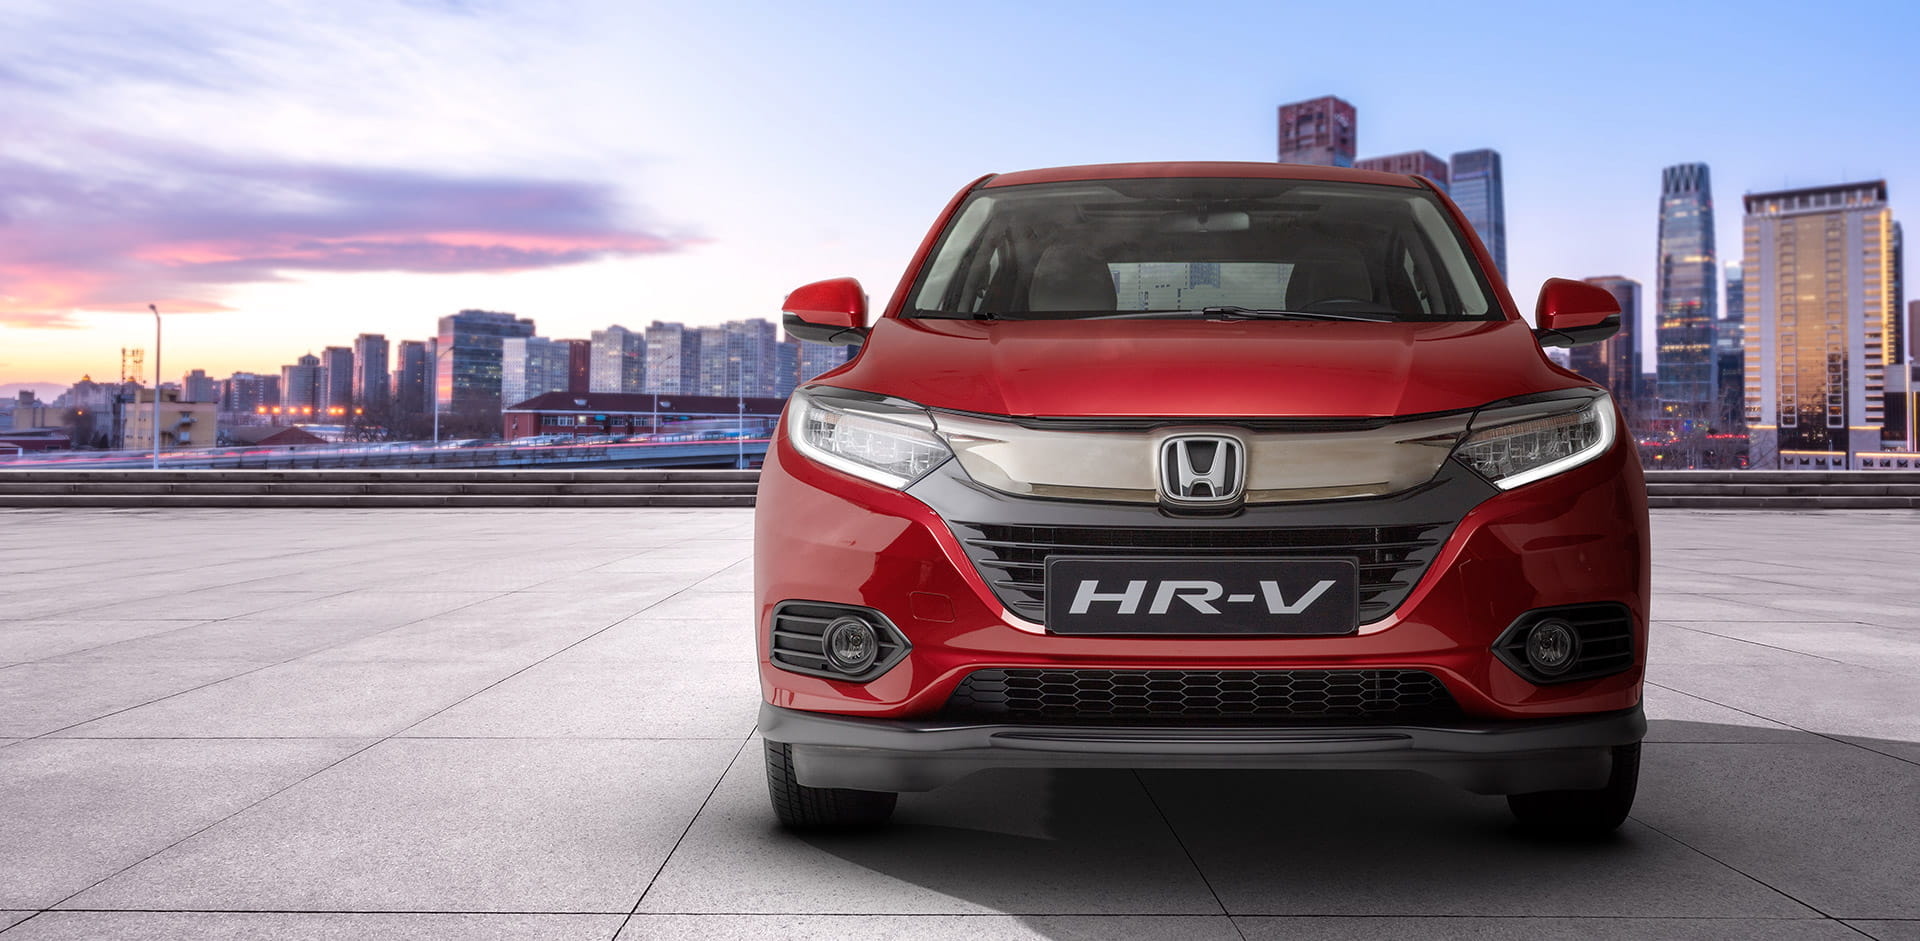 Honda HR-V 2020: Should you Buy an HRV?